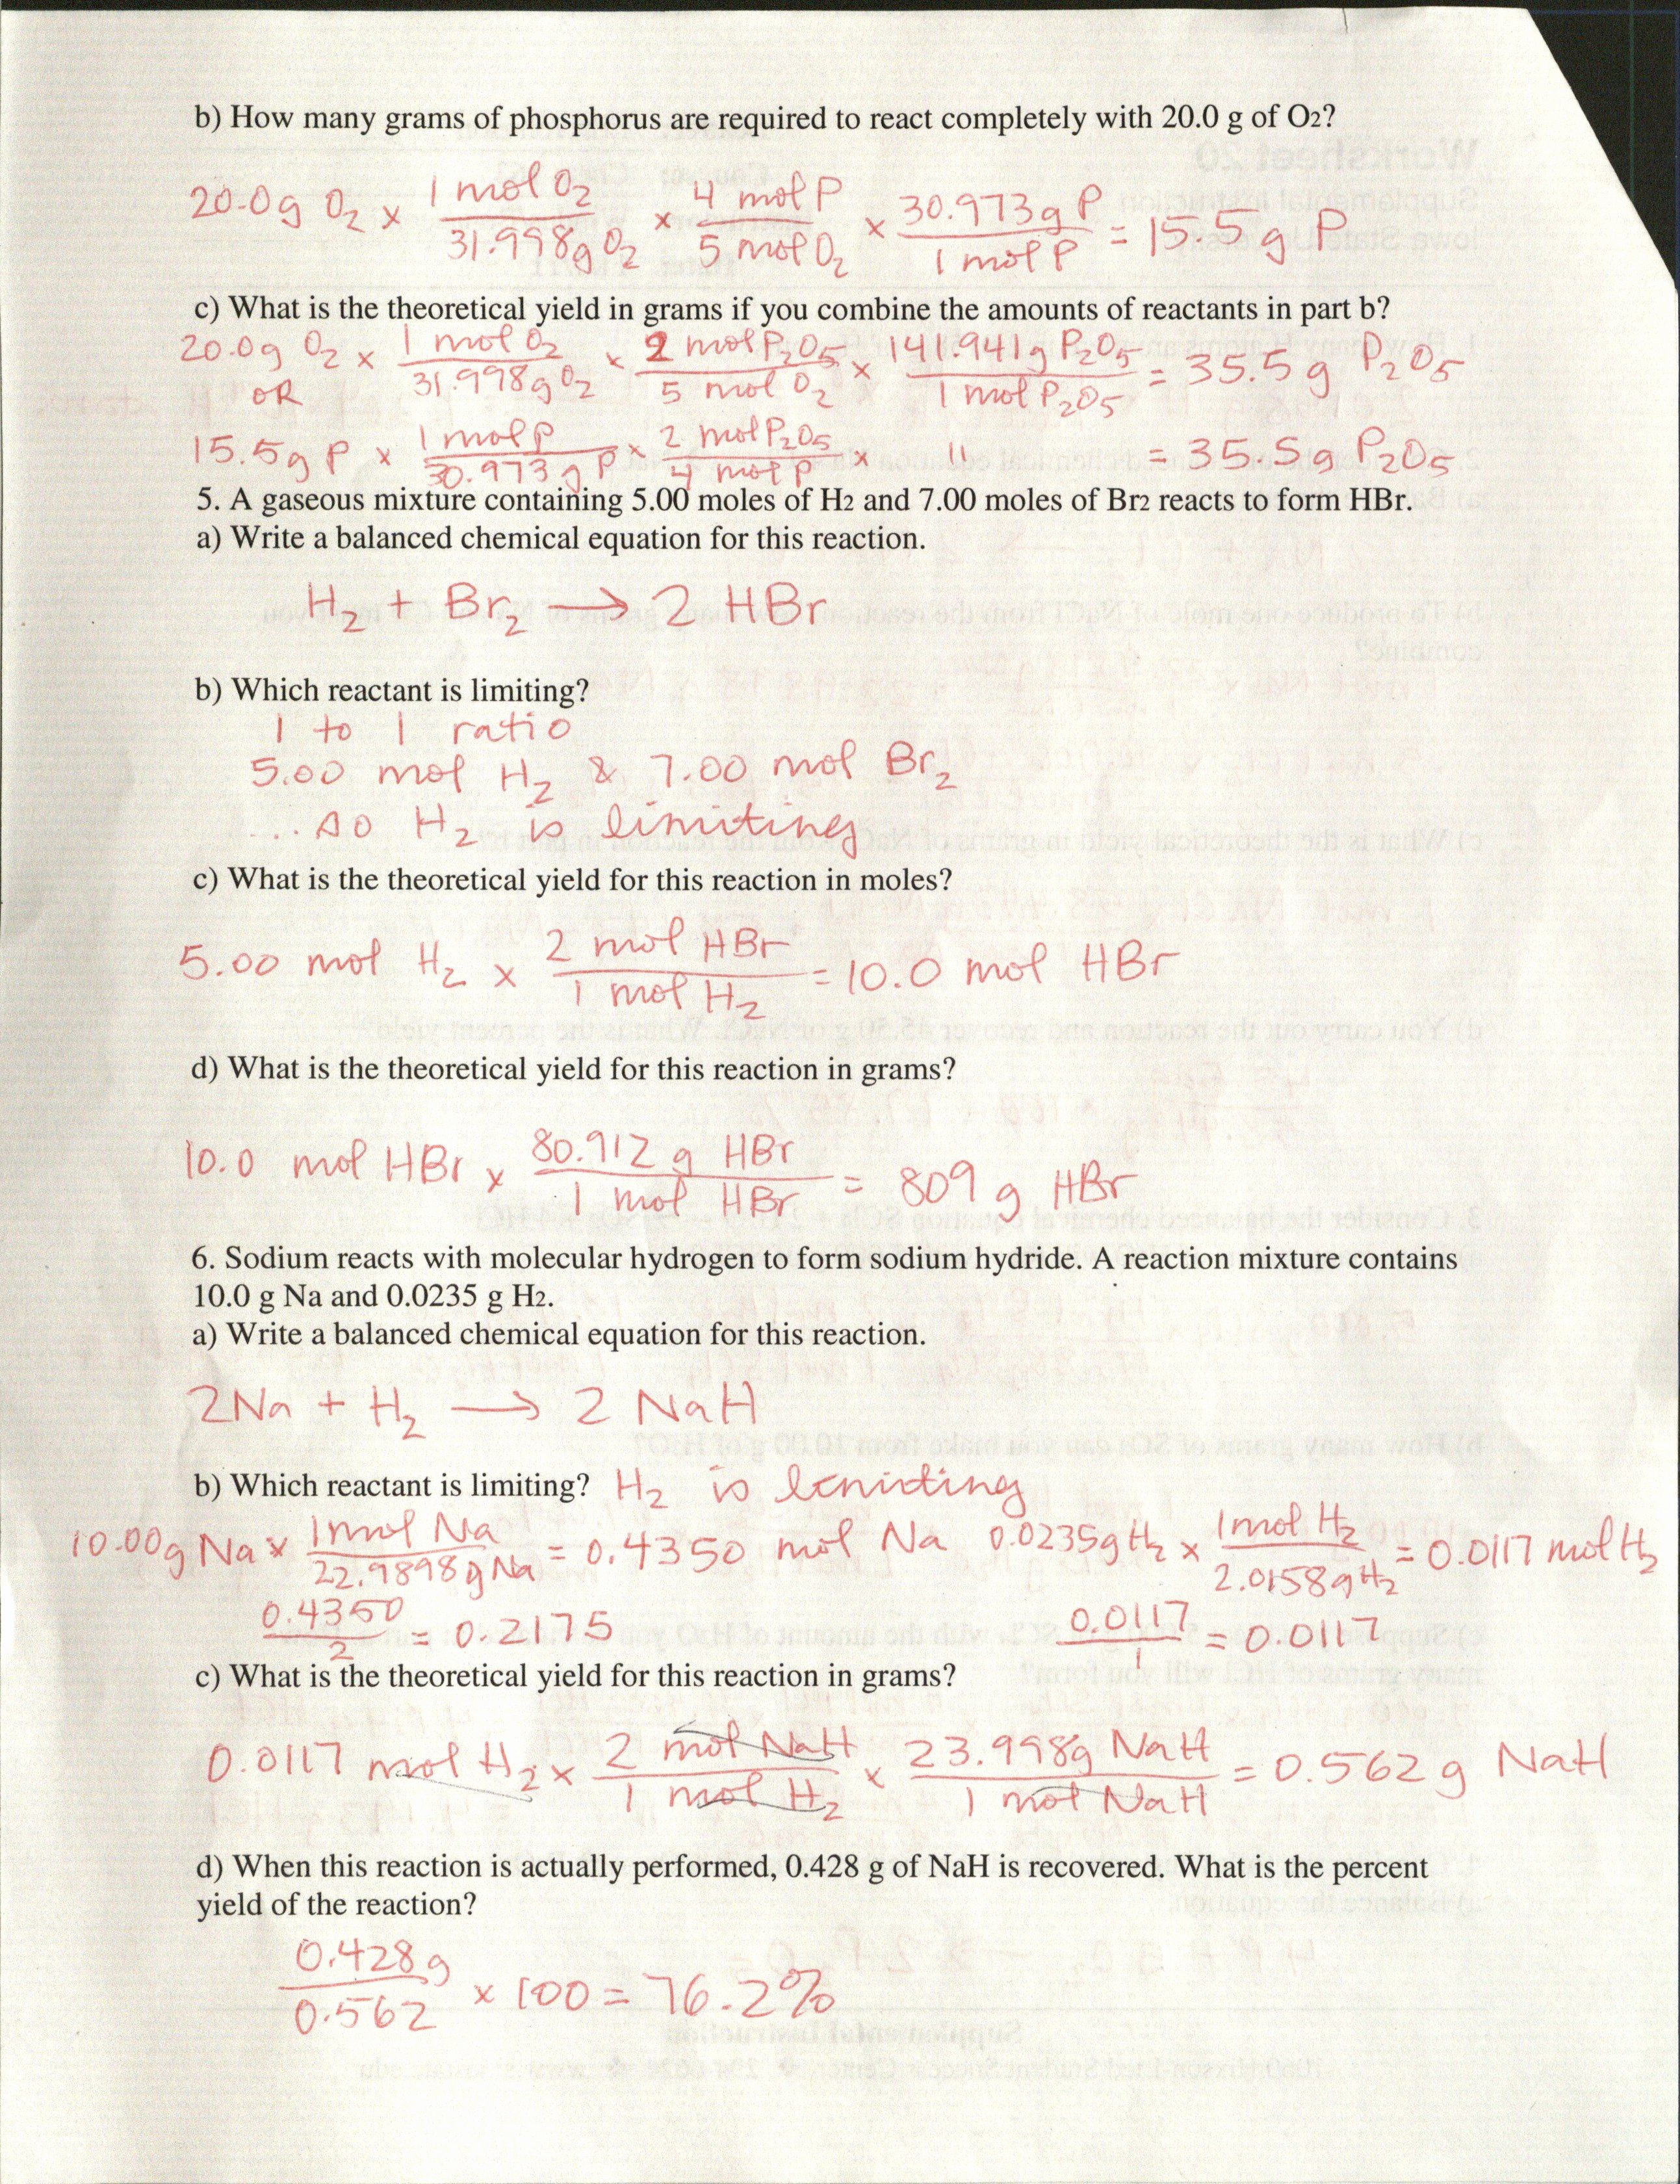 Worksheet Periodic Trends Answers Beautiful Periodic Trends Worksheet Answers Driverlayer Search Engine